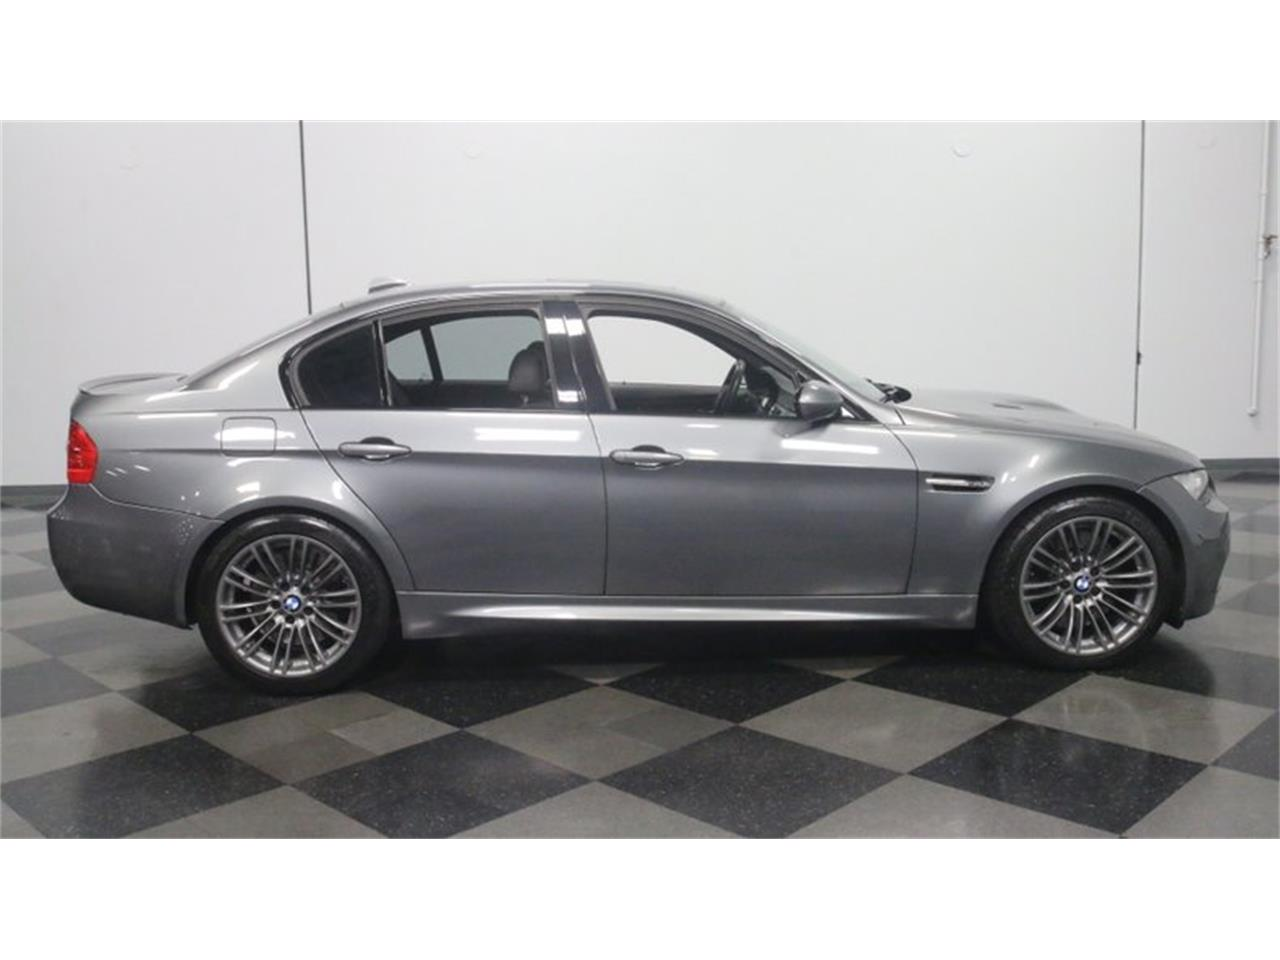 2010 BMW M3 for sale in Lithia Springs, GA – photo 30